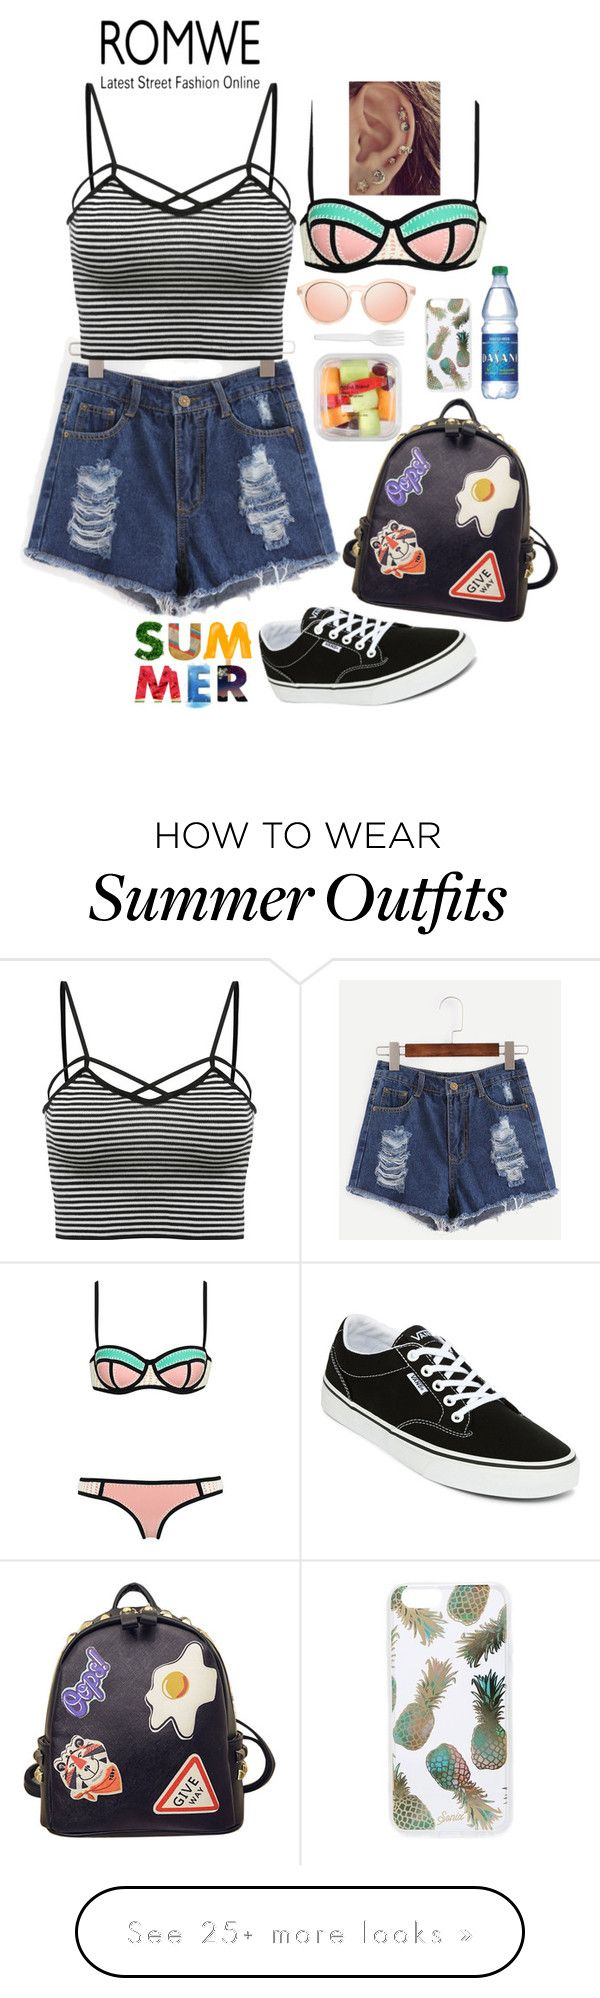 """""""sunset outfit"""" by giulisdasf on Polyvore featuring Cotton Candy, Vans, WithChic, Genuine Joe and Sonix"""